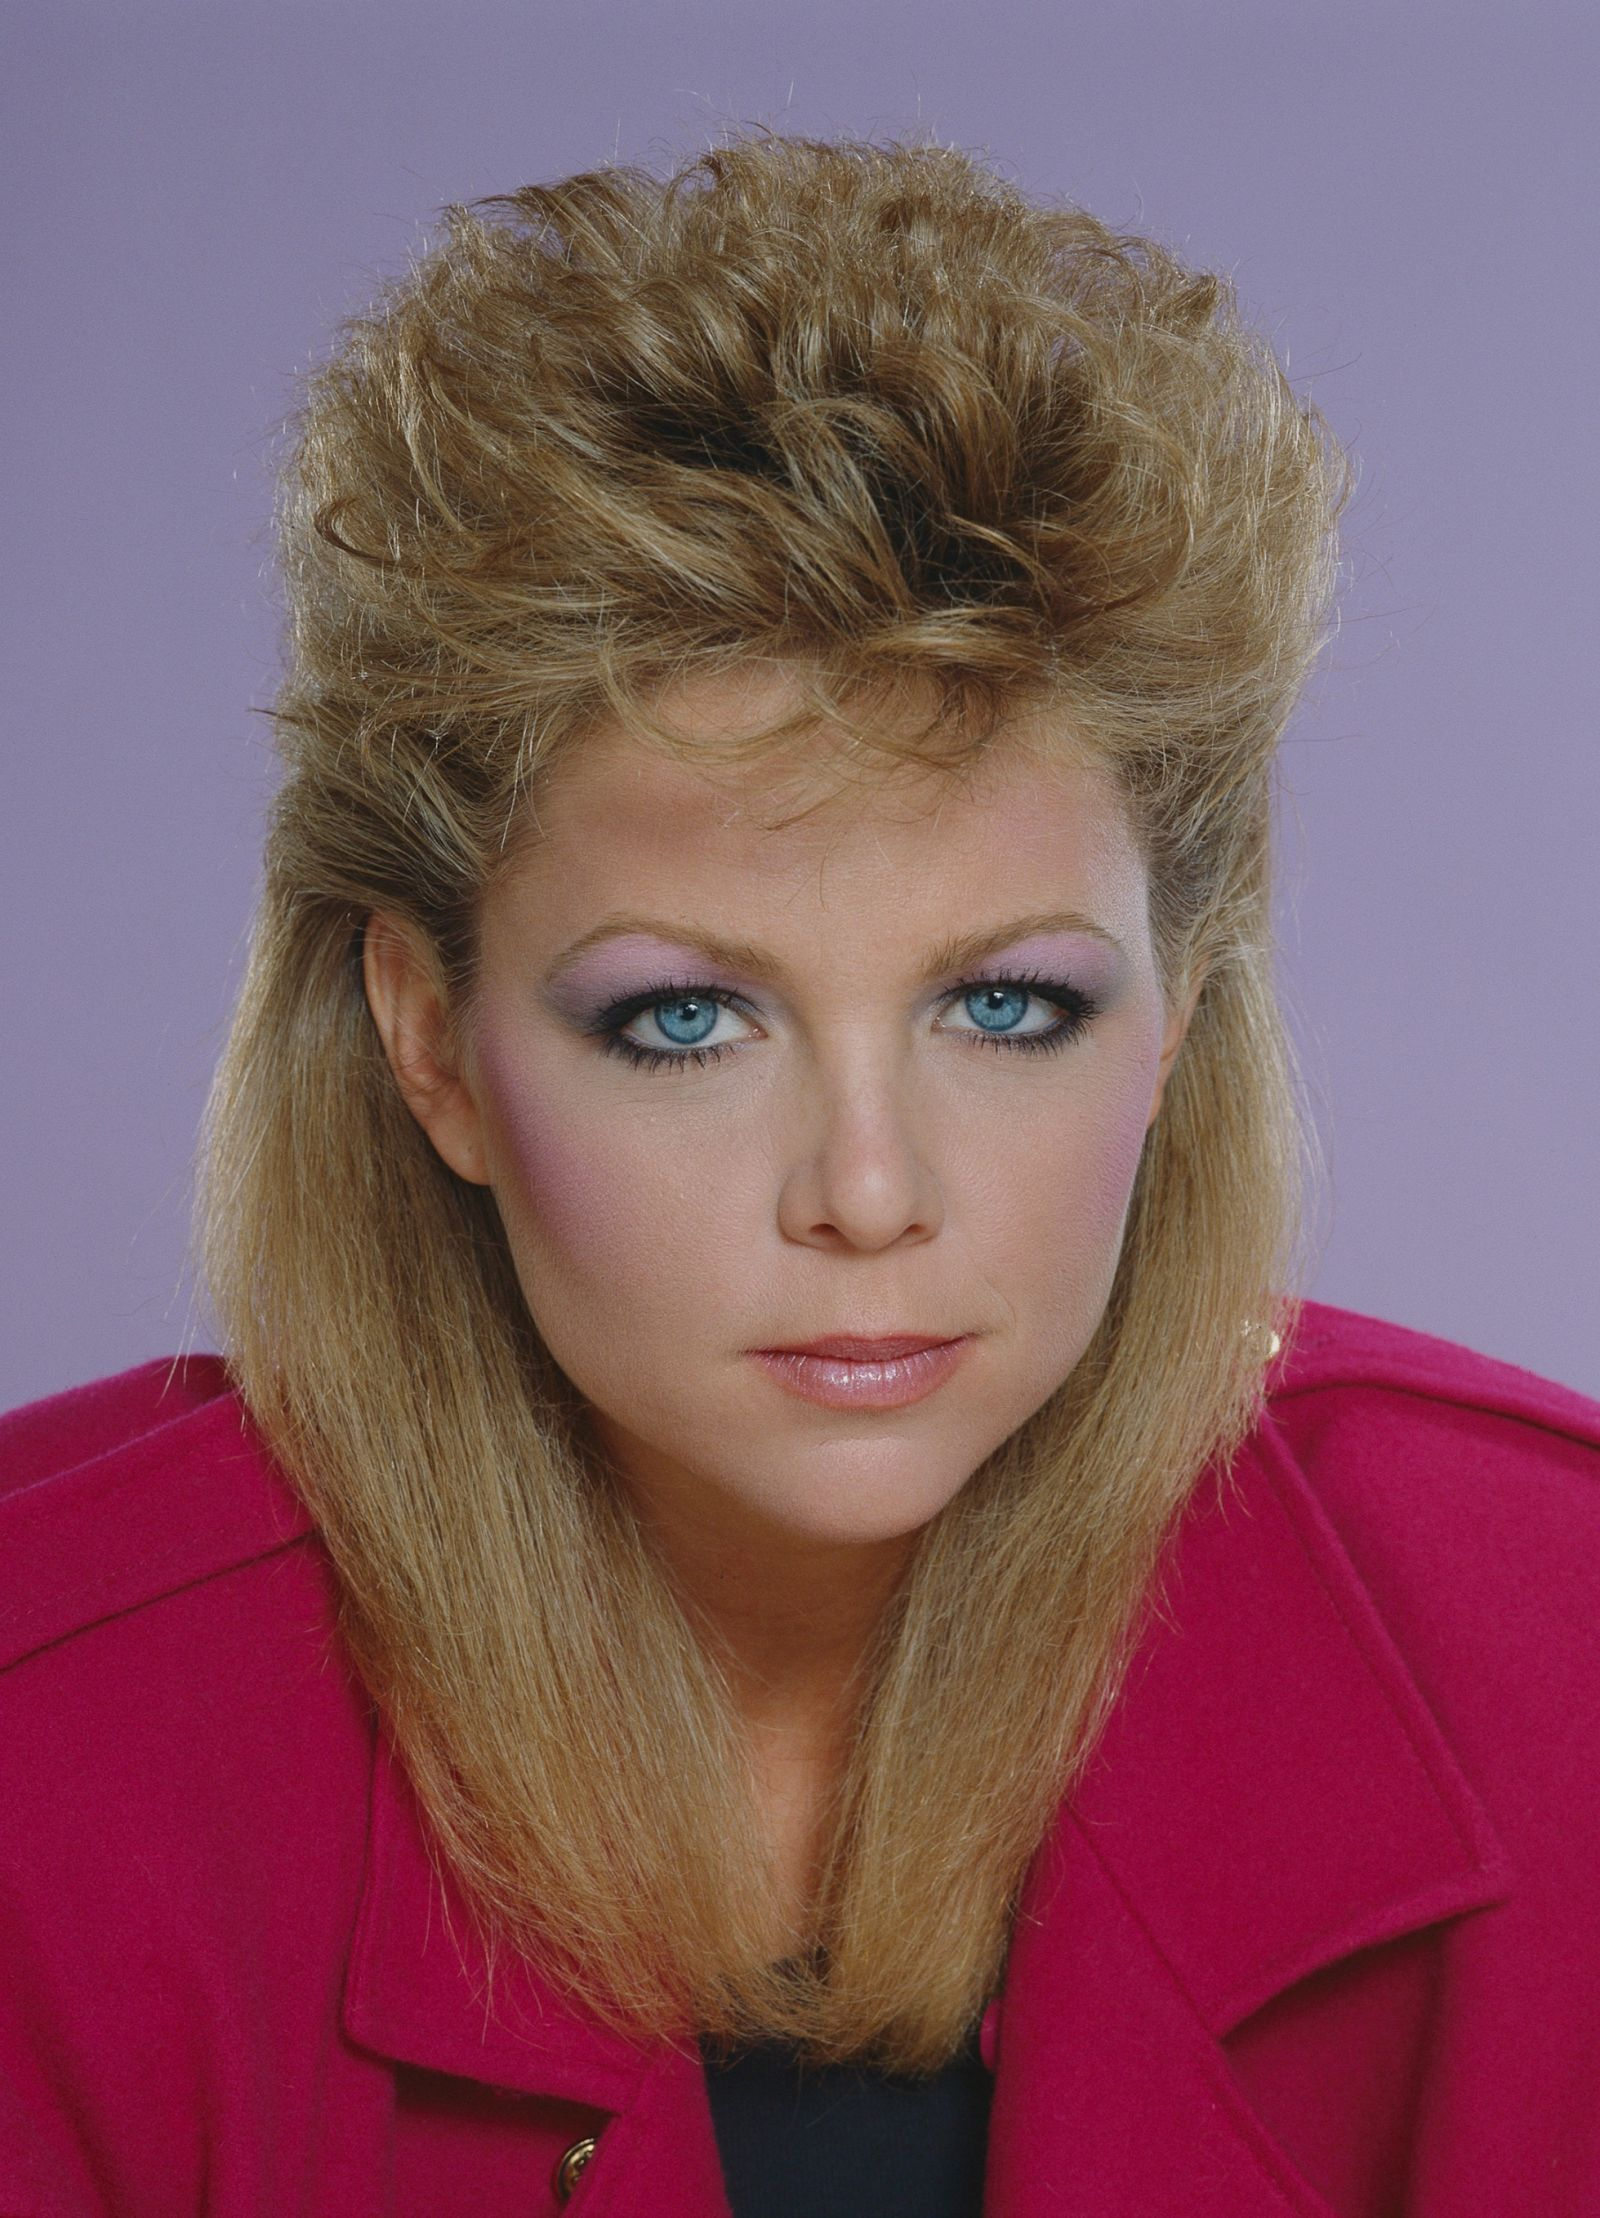 The 13 Most Embarrassing '80s Beauty Trends | Womens ...